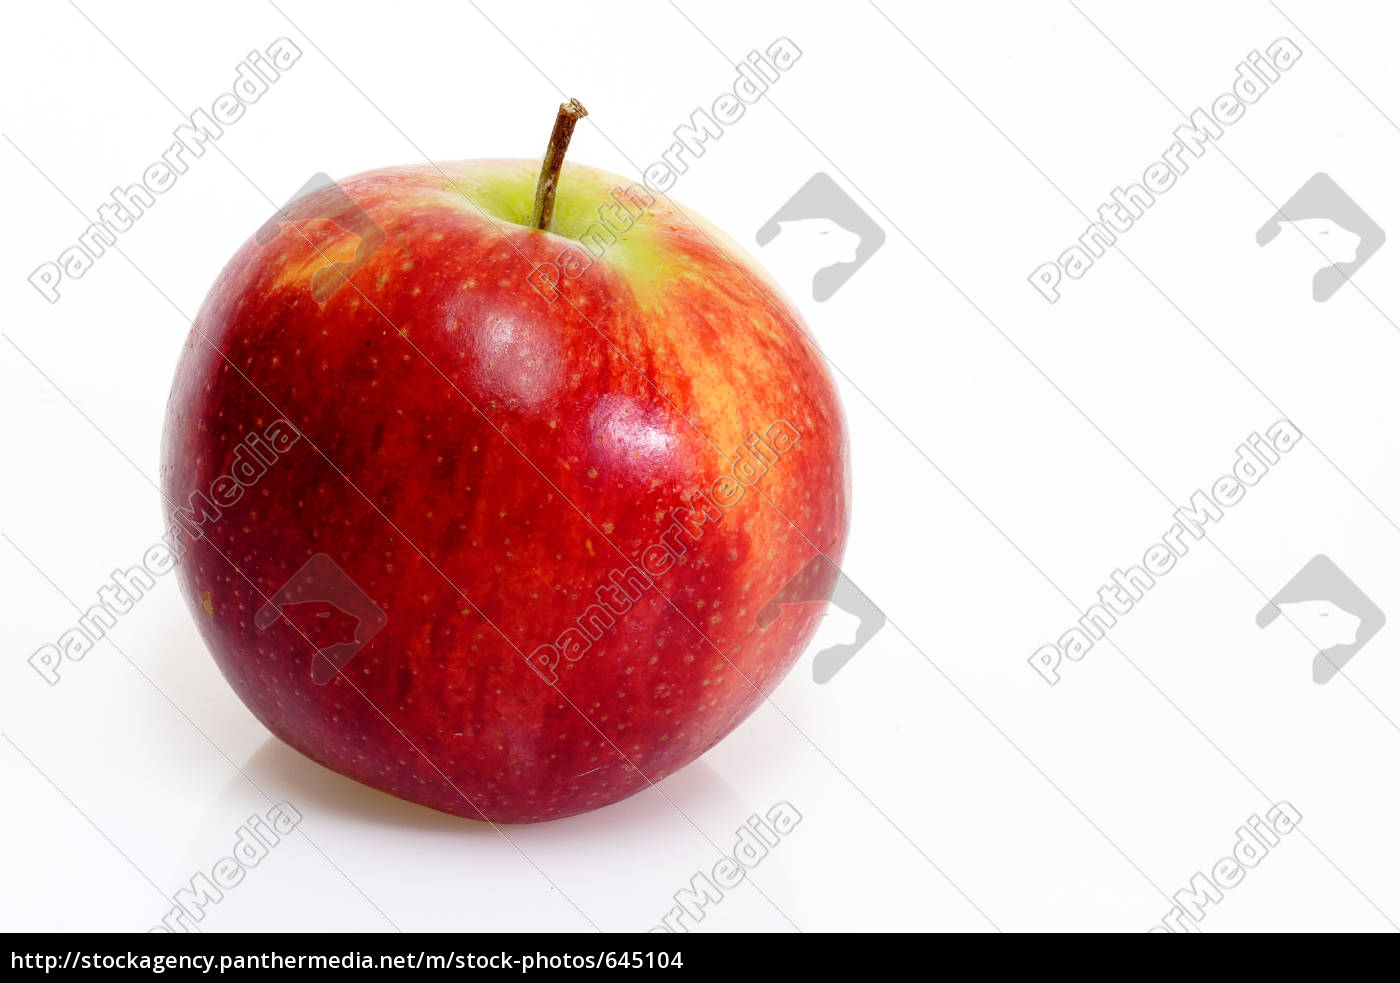 red, apple - 645104